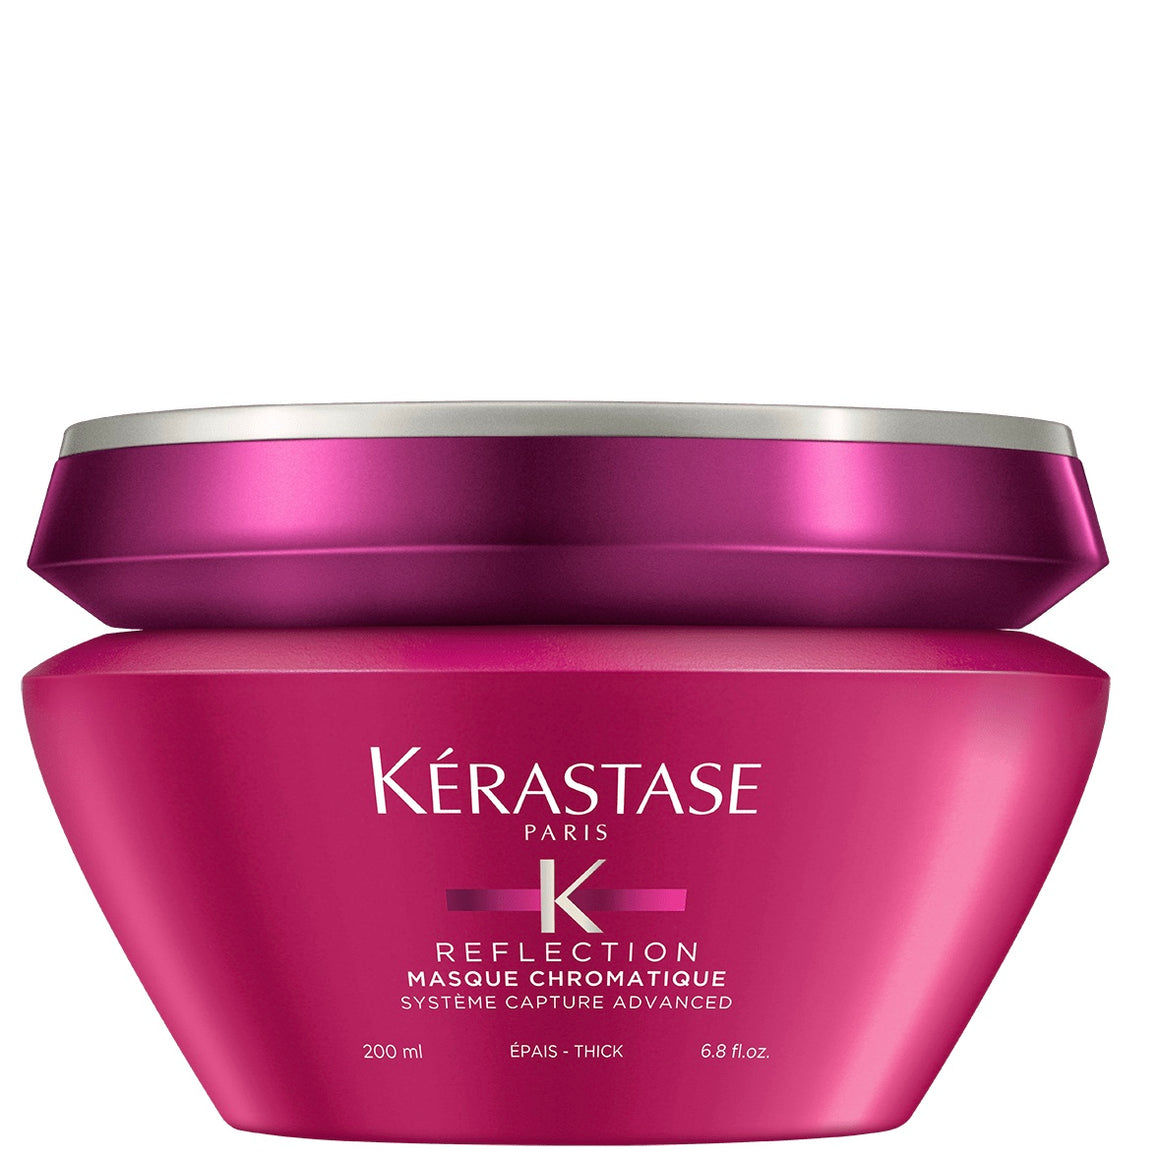 Kérastase Masque Chromatique THICK Hair Mask 200ml